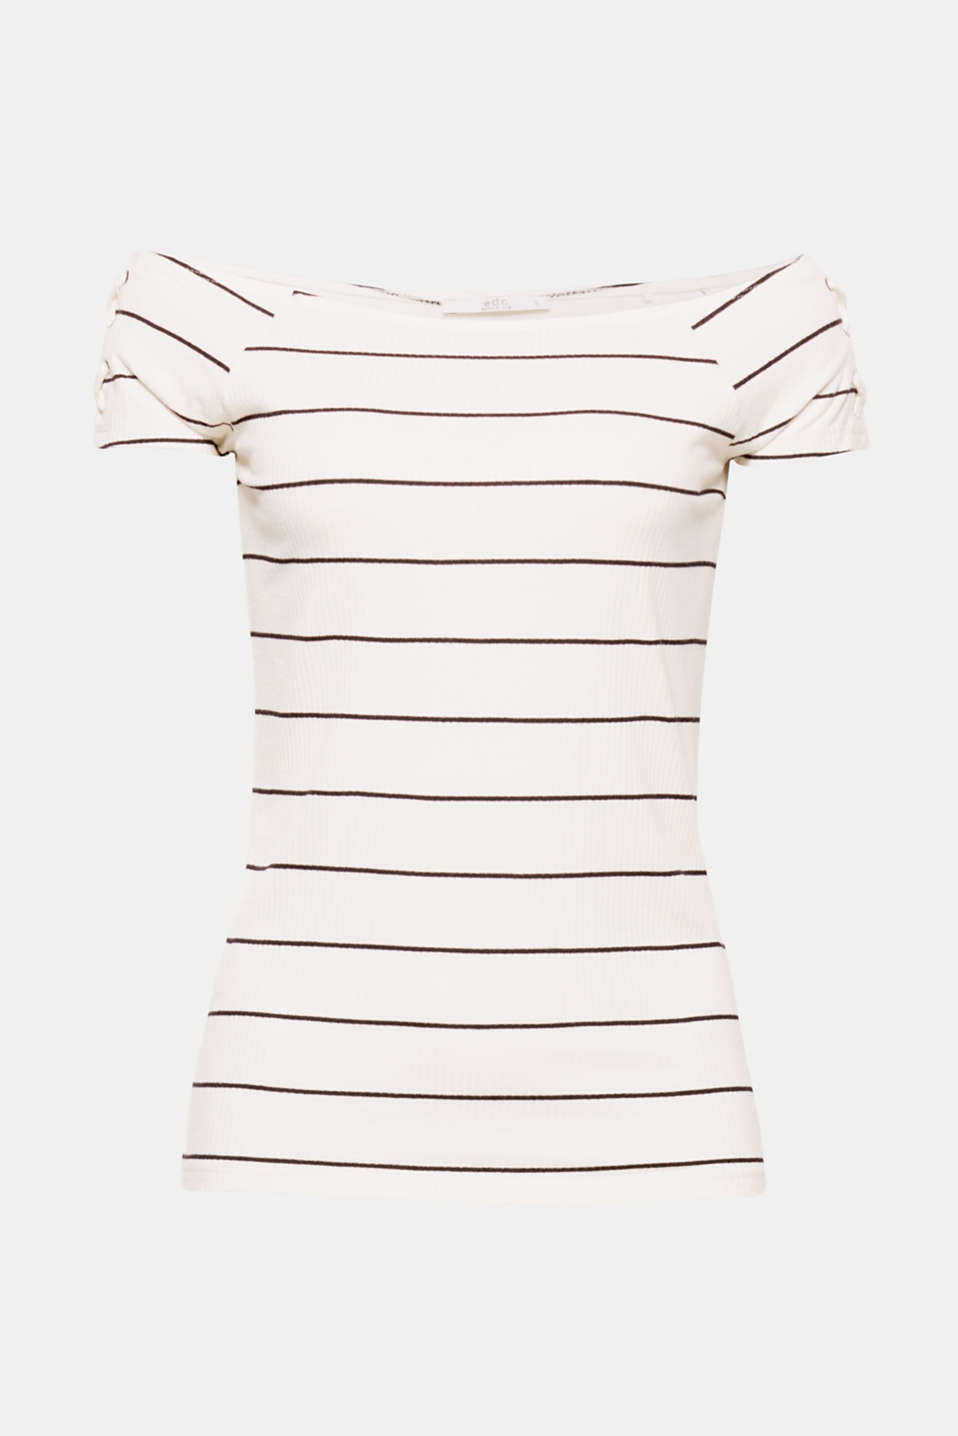 Sophisticated lace-up effects accentuate the sexy shoulders that this ribbed off-shoulder top with nautical stripes reveals!